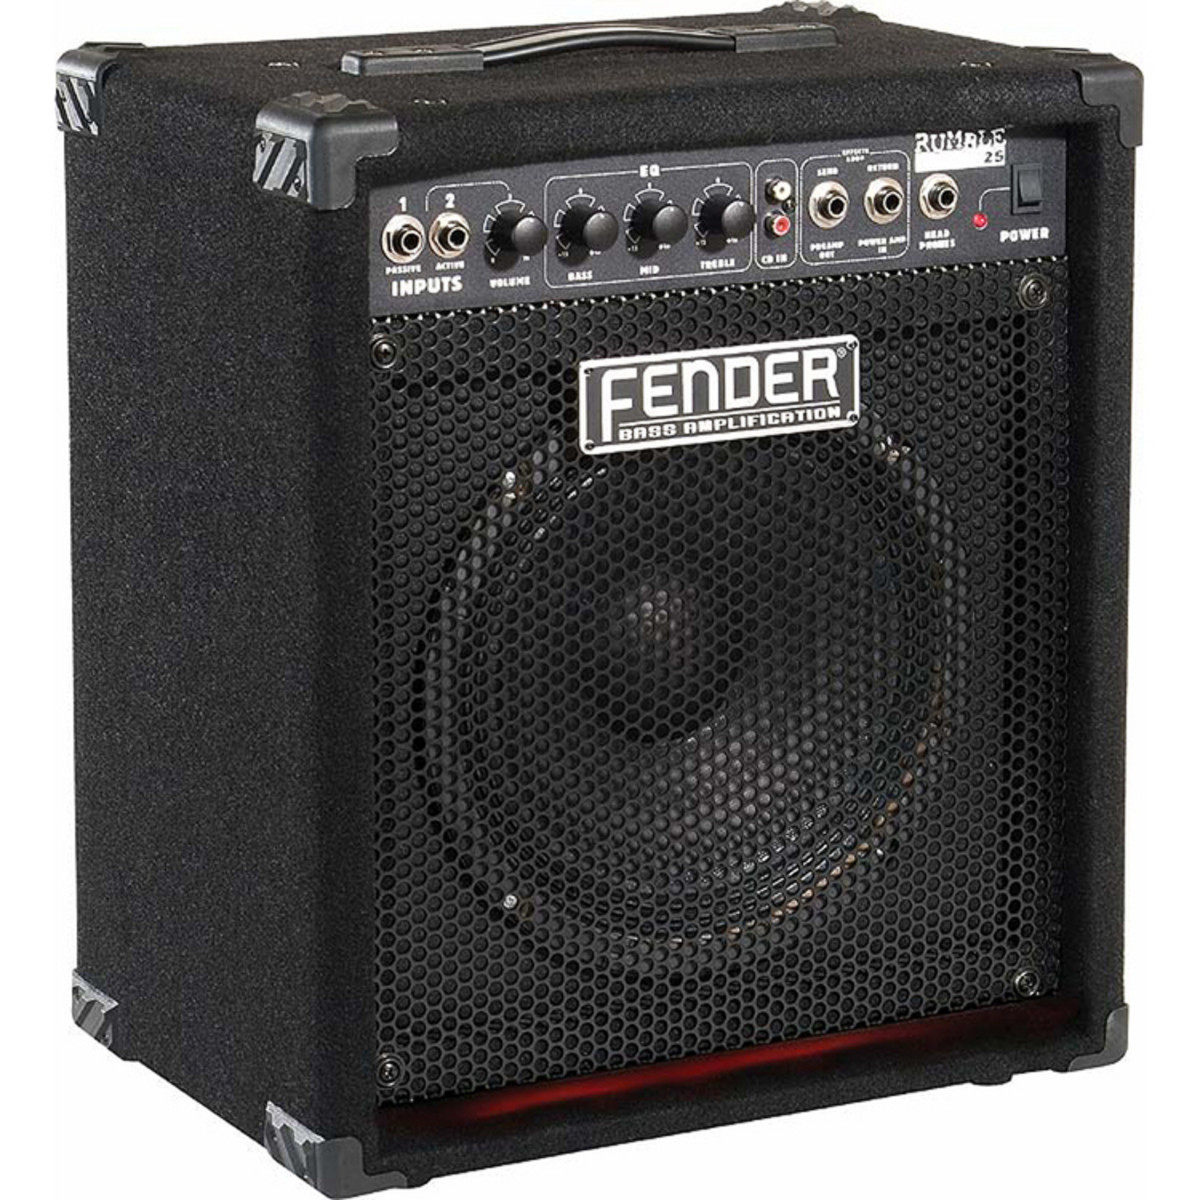 Discontinued Fender Rumble 25 Bass Amp 25 W 1 X 10